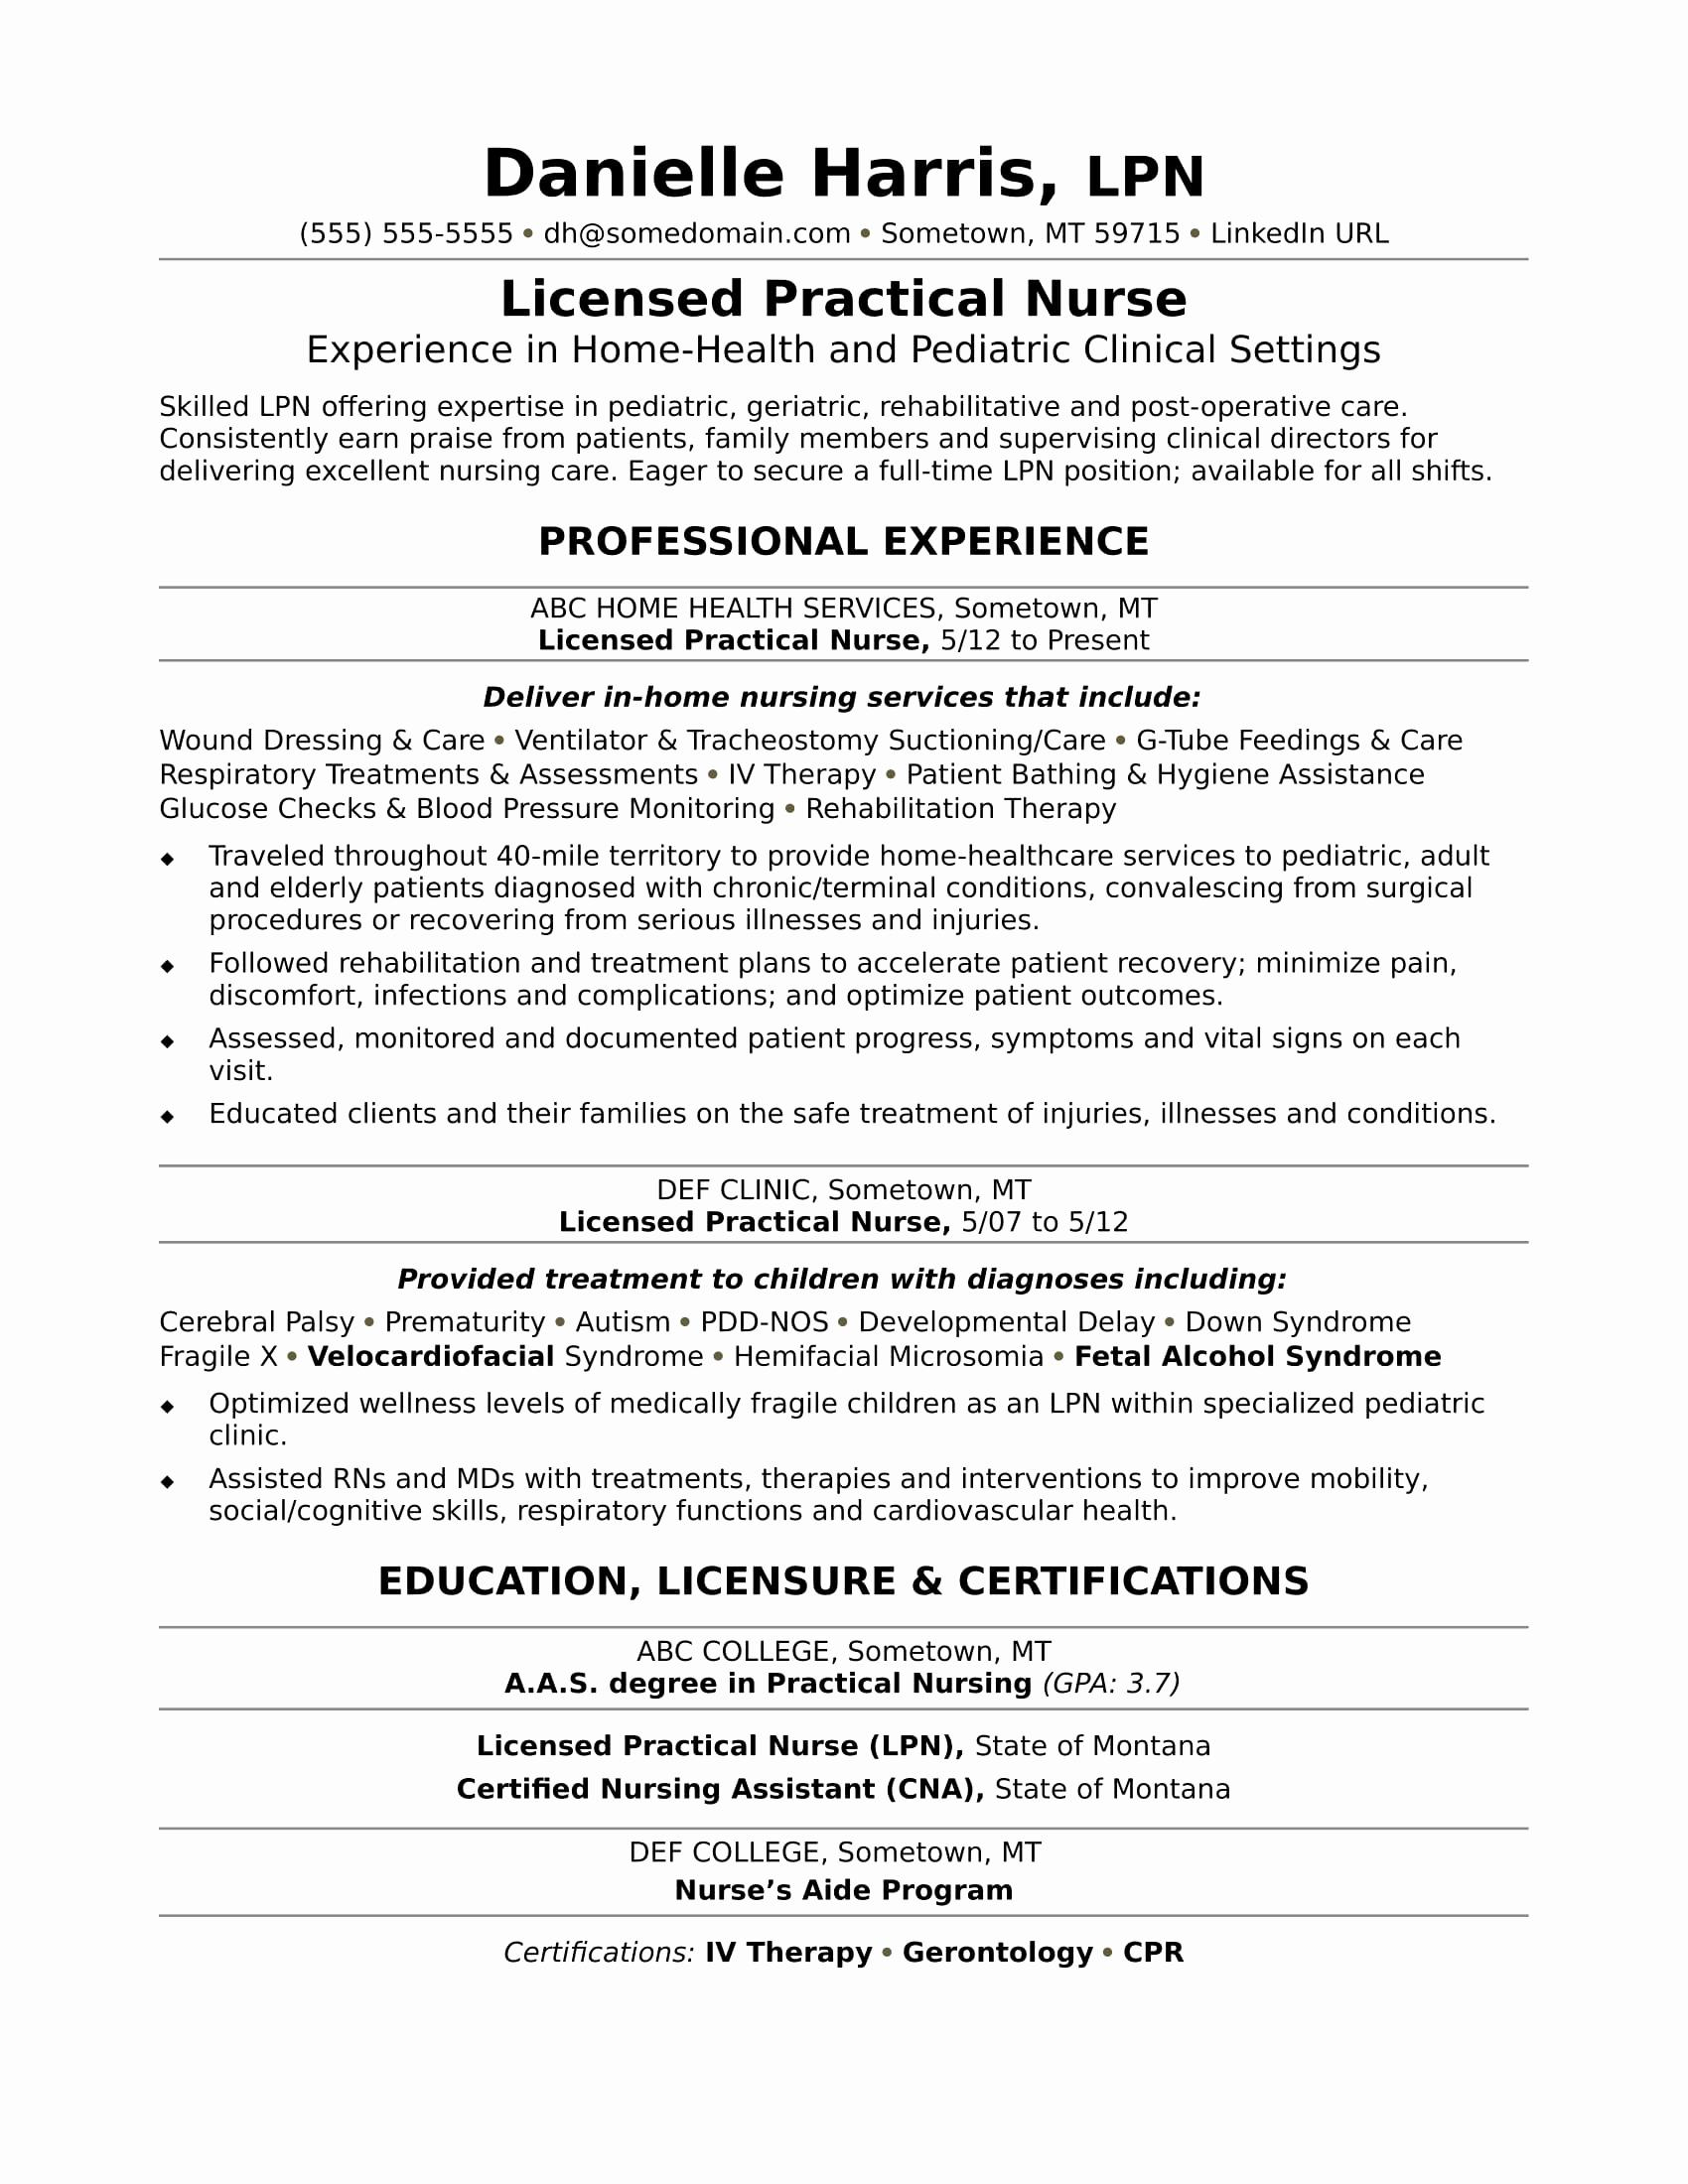 healthcare administration resume example-Medical Administration Resume Sample Unique Elegant New Nurse Resume Awesome Nurse Resume 0d Wallpapers 42 4-n